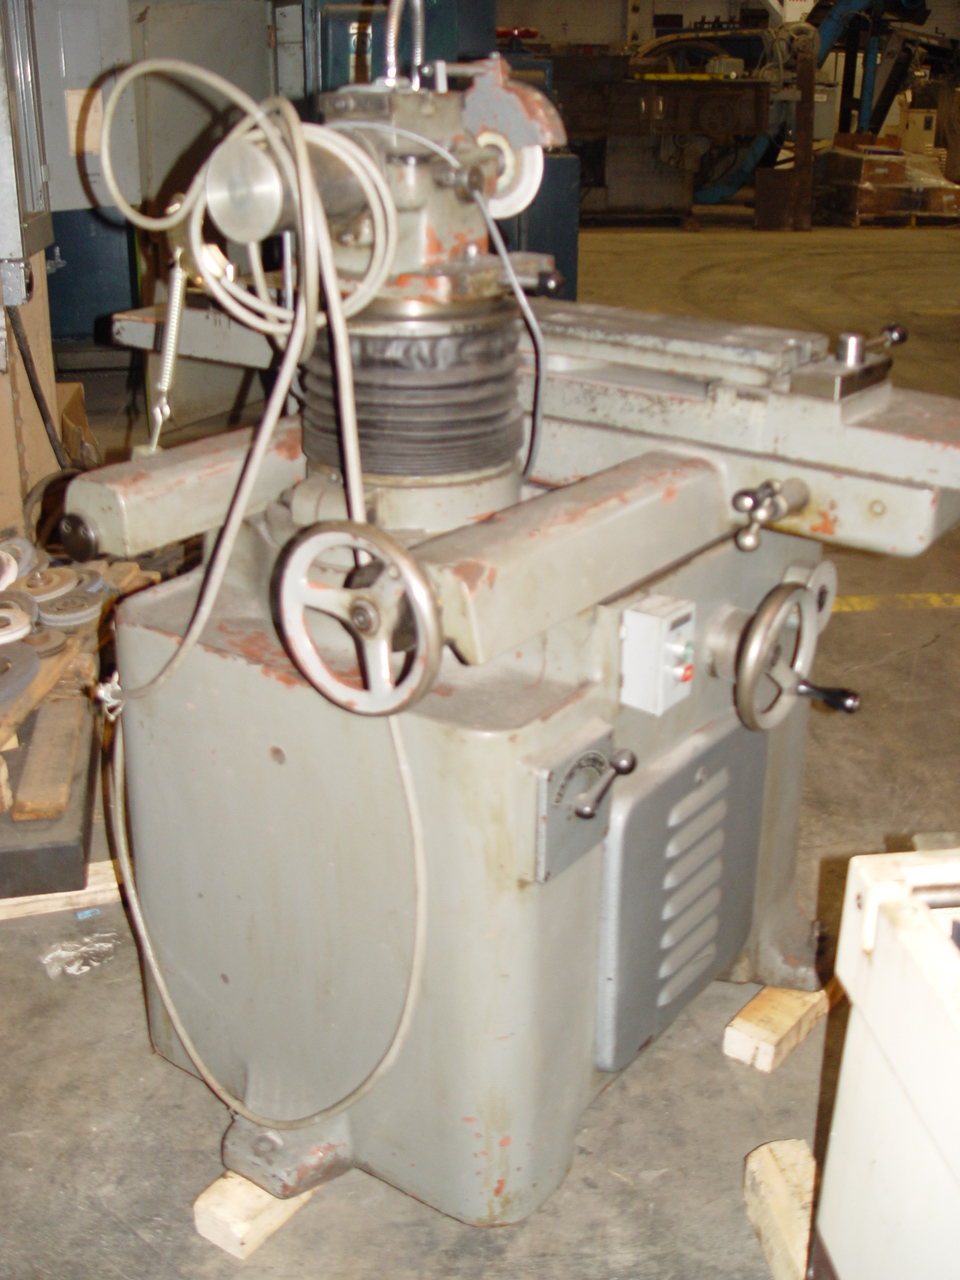 Tos Universal Tool and Cutter Grinder Model BN 102